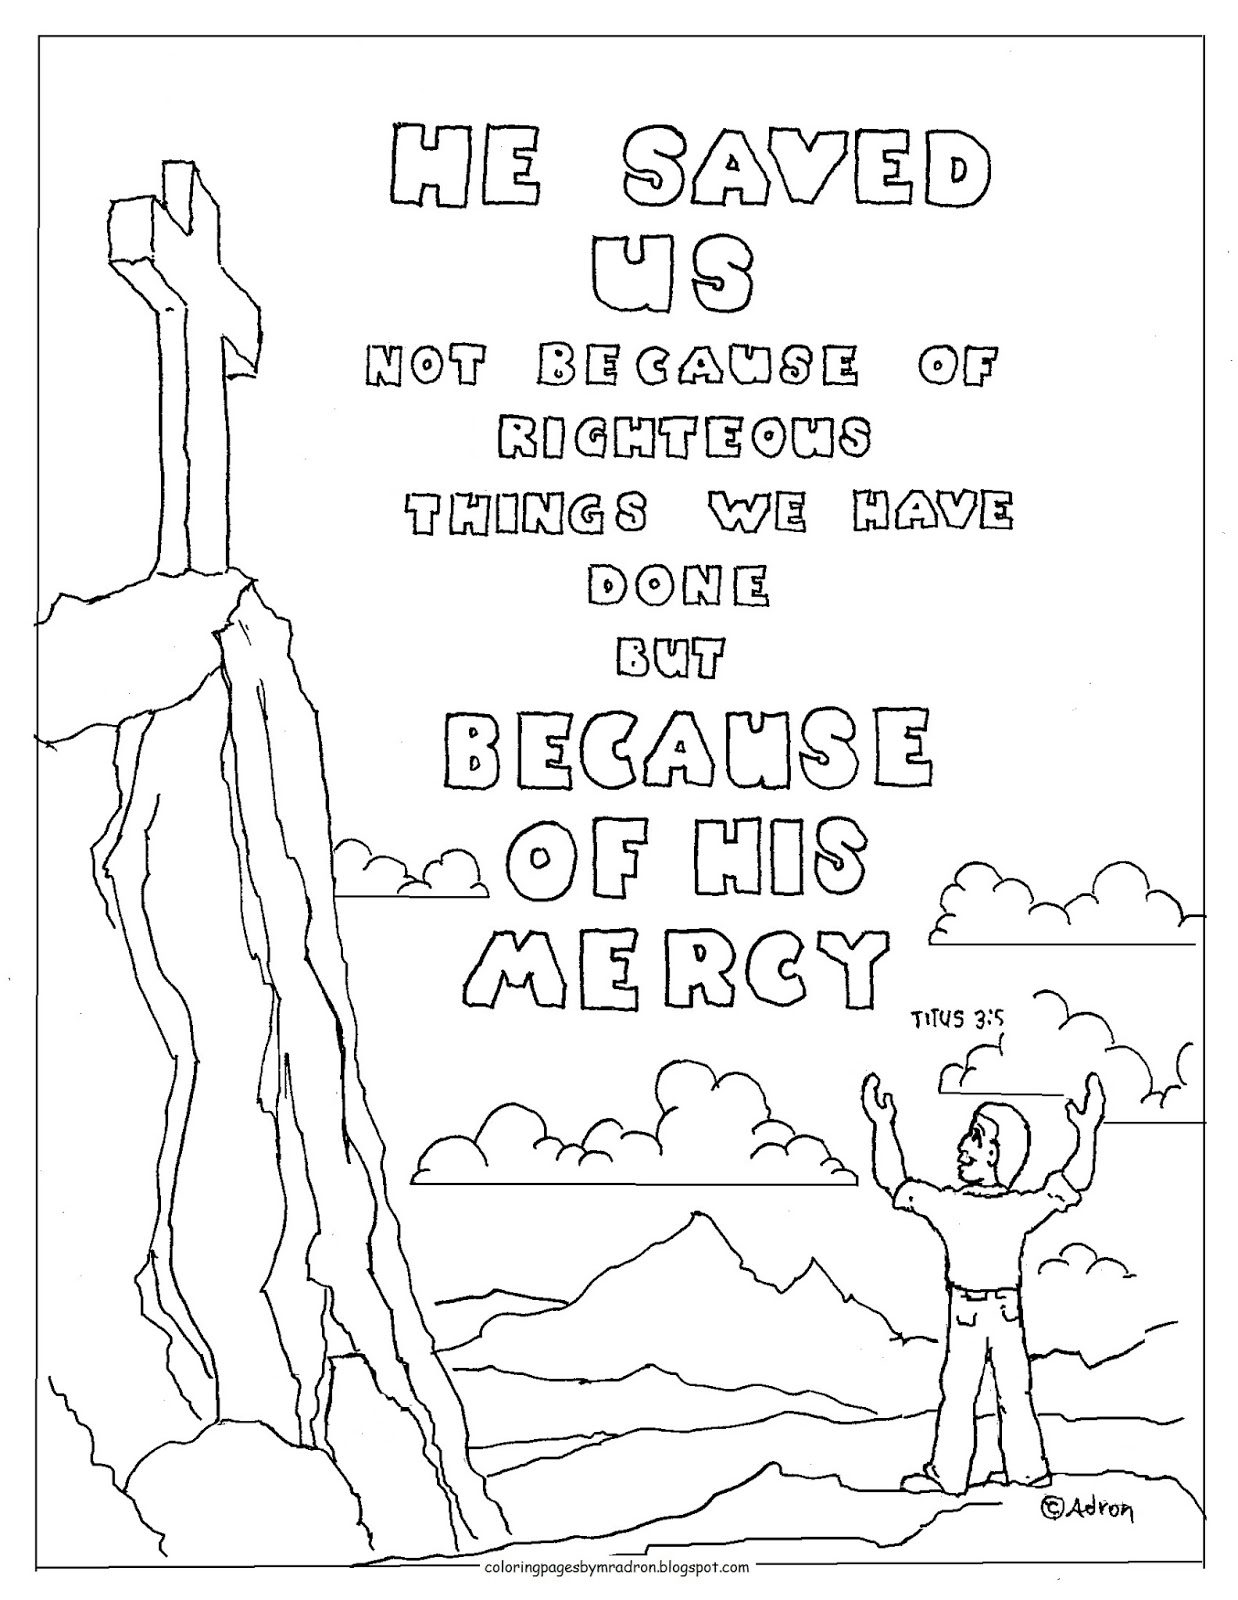 Coloring Pages For Kids By Mr Adron Titus 3 5 Printable